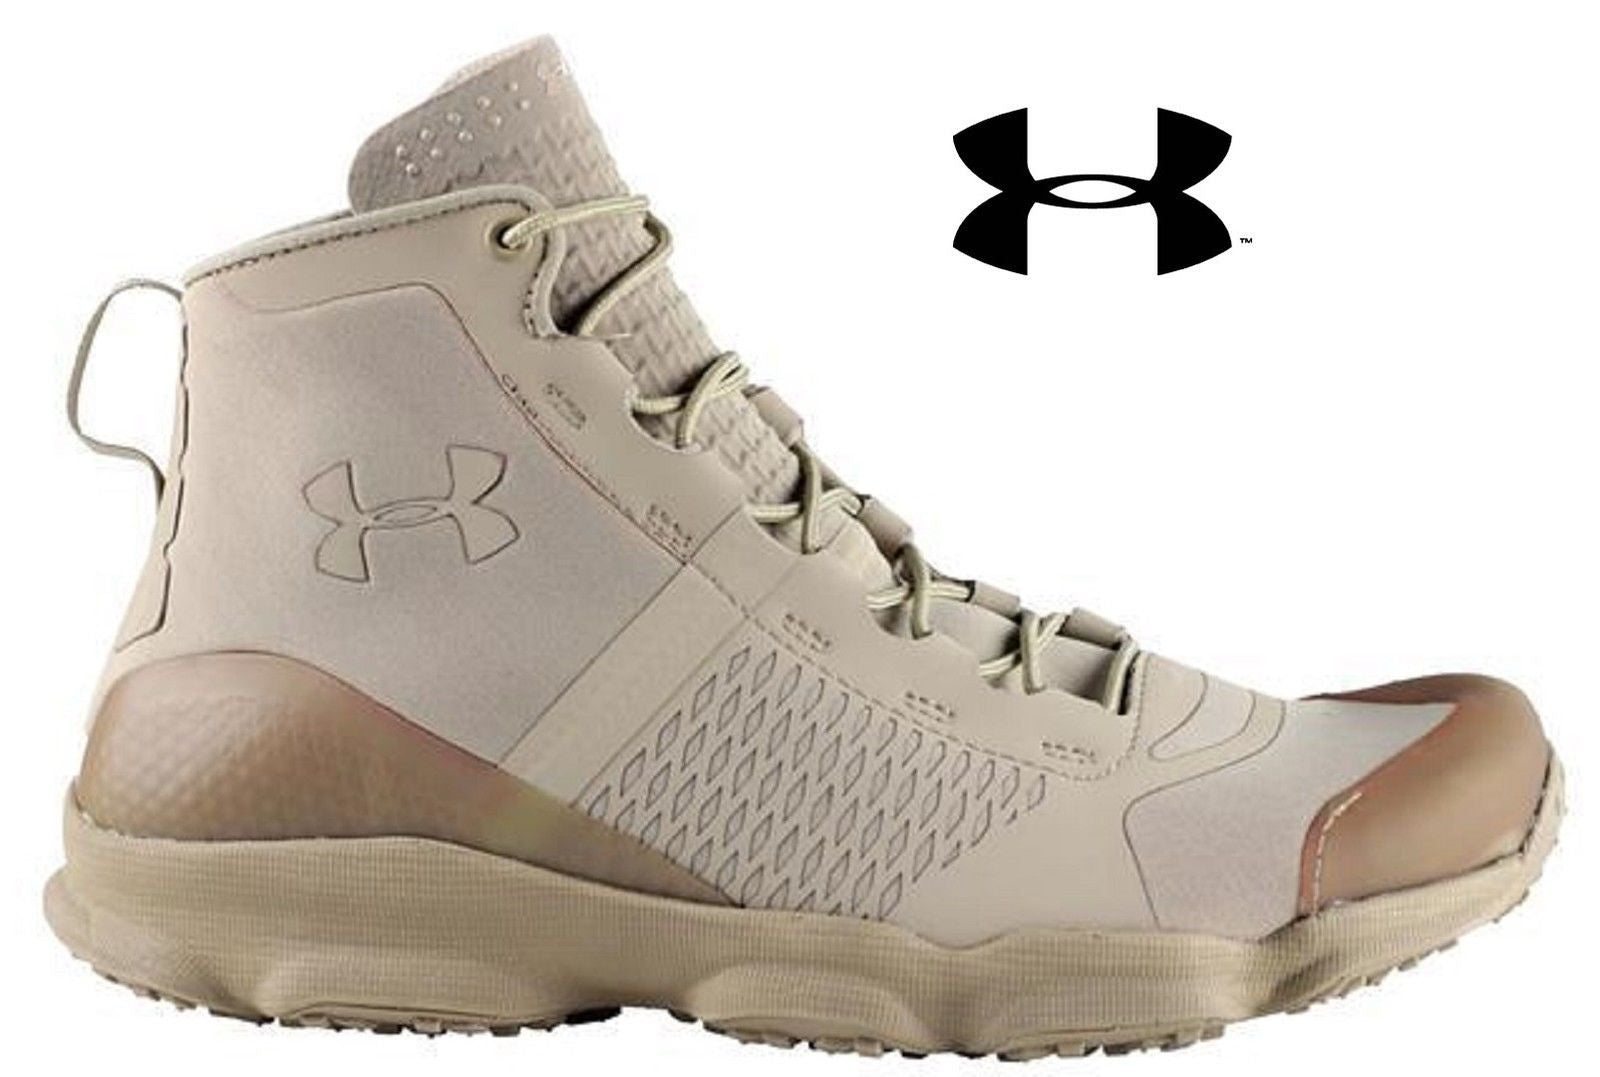 Under Armour Desert Sand SpeedFit Hike Boots - Mens 5.5